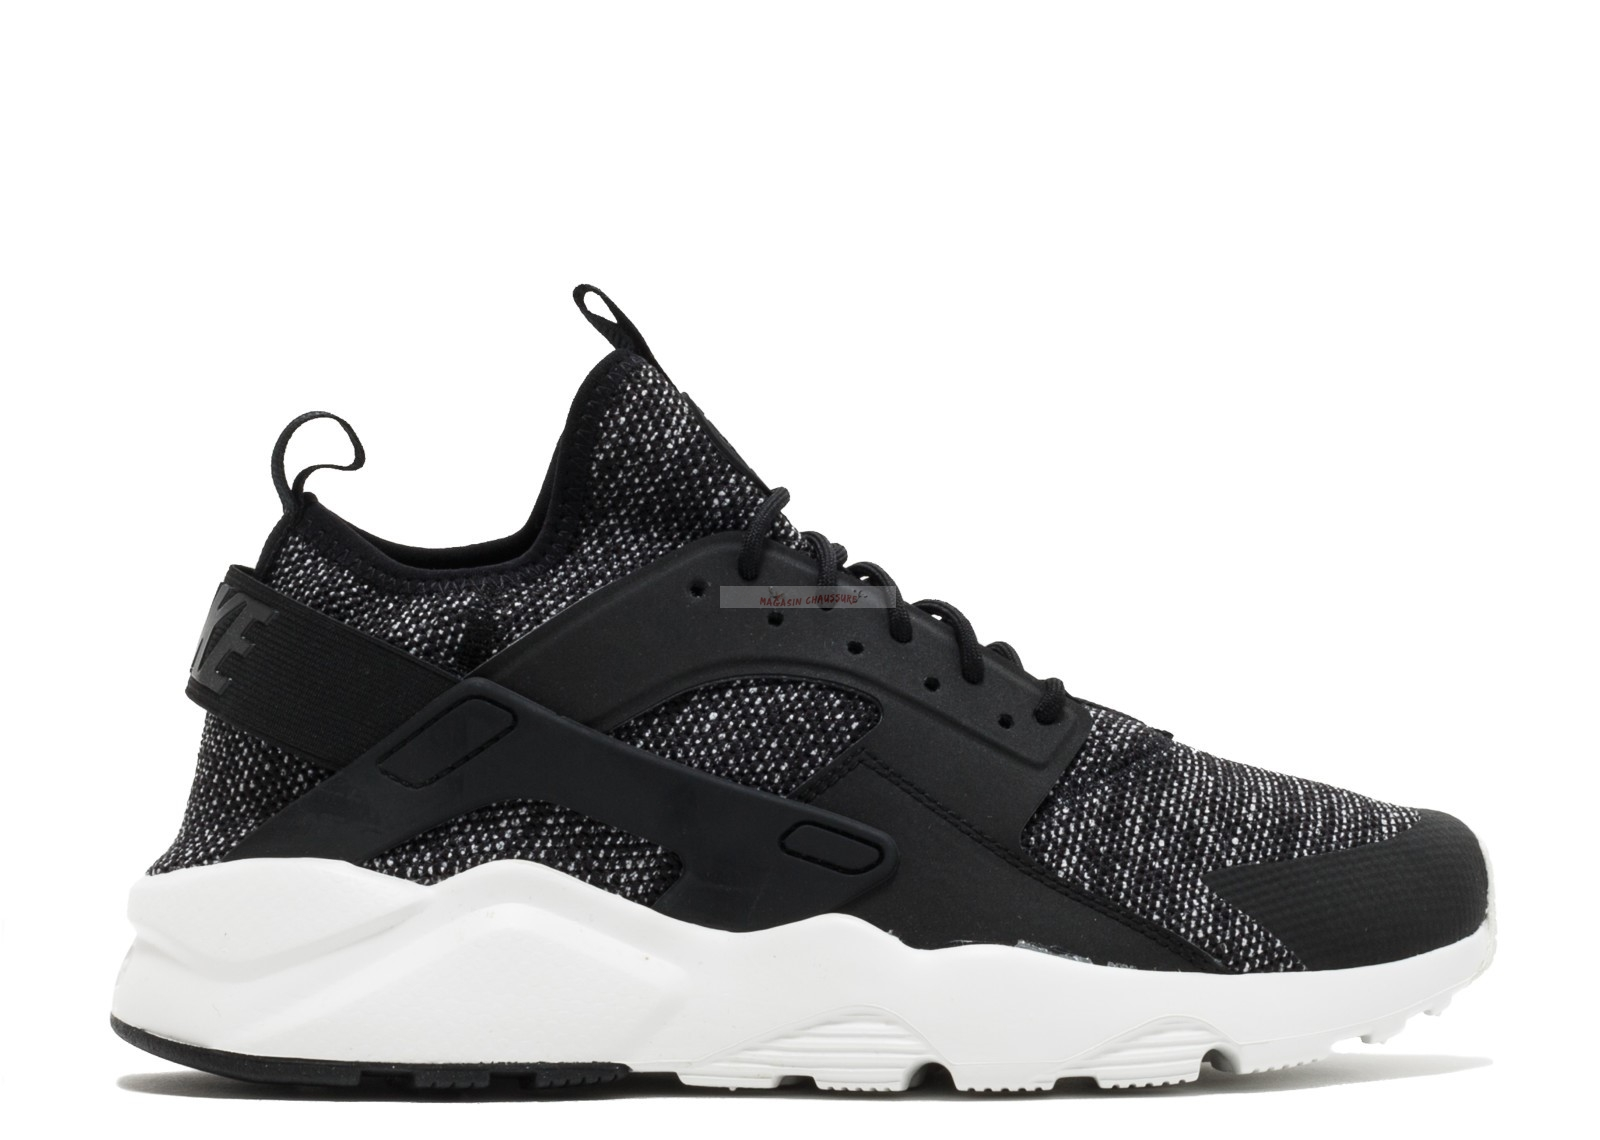 Nike Air Huarache Run Ultra Br Noir Blanc (833147-003) Chaussure de Basket